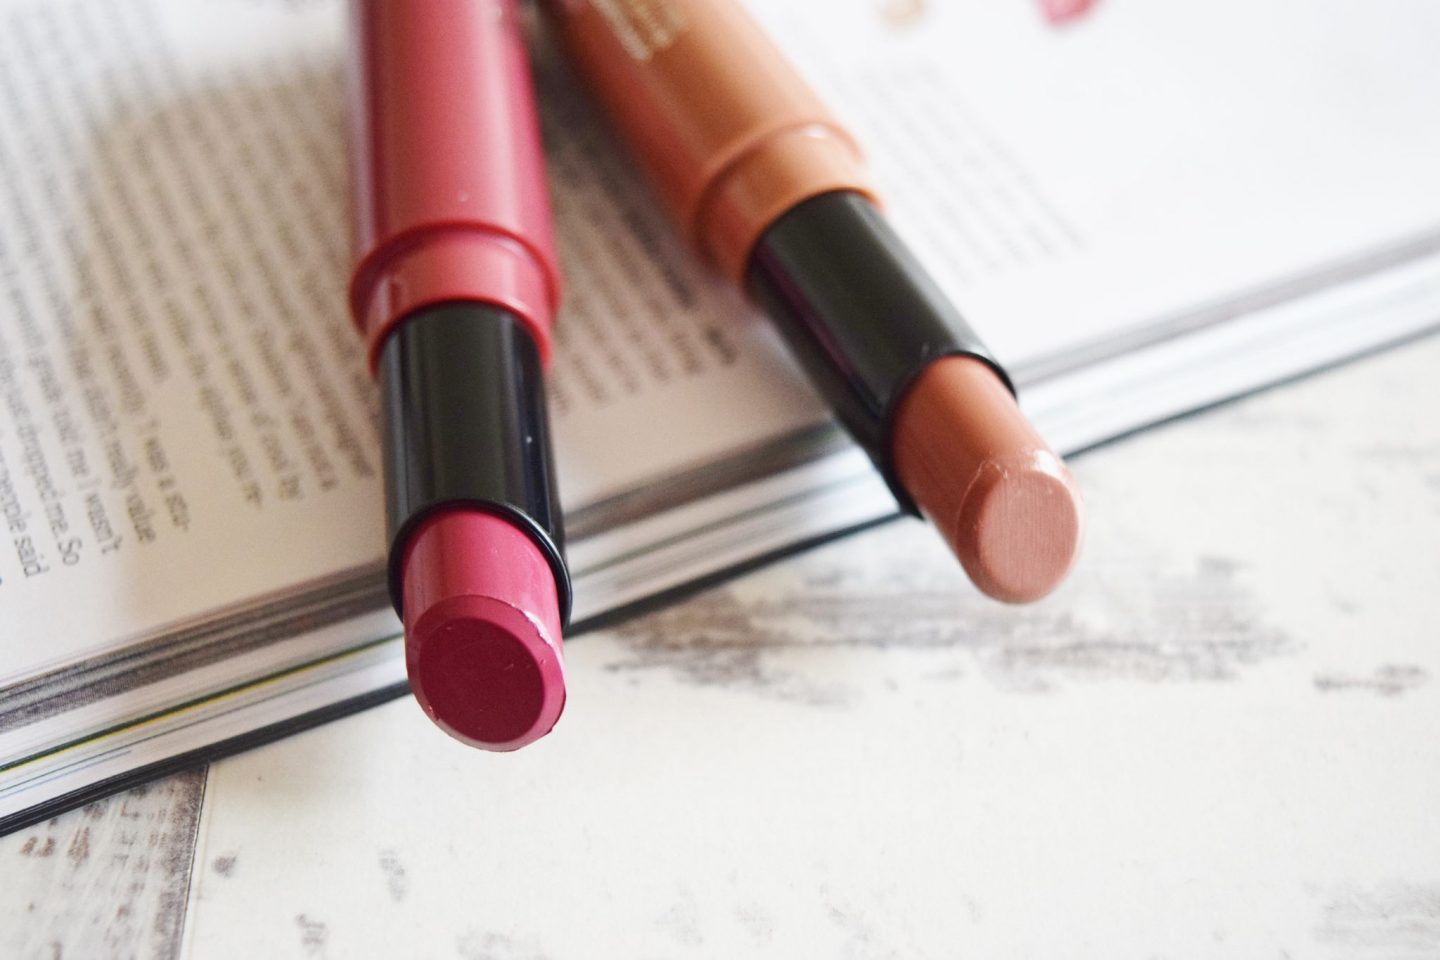 New-Lip-Makeup-Launches-16-1440x960